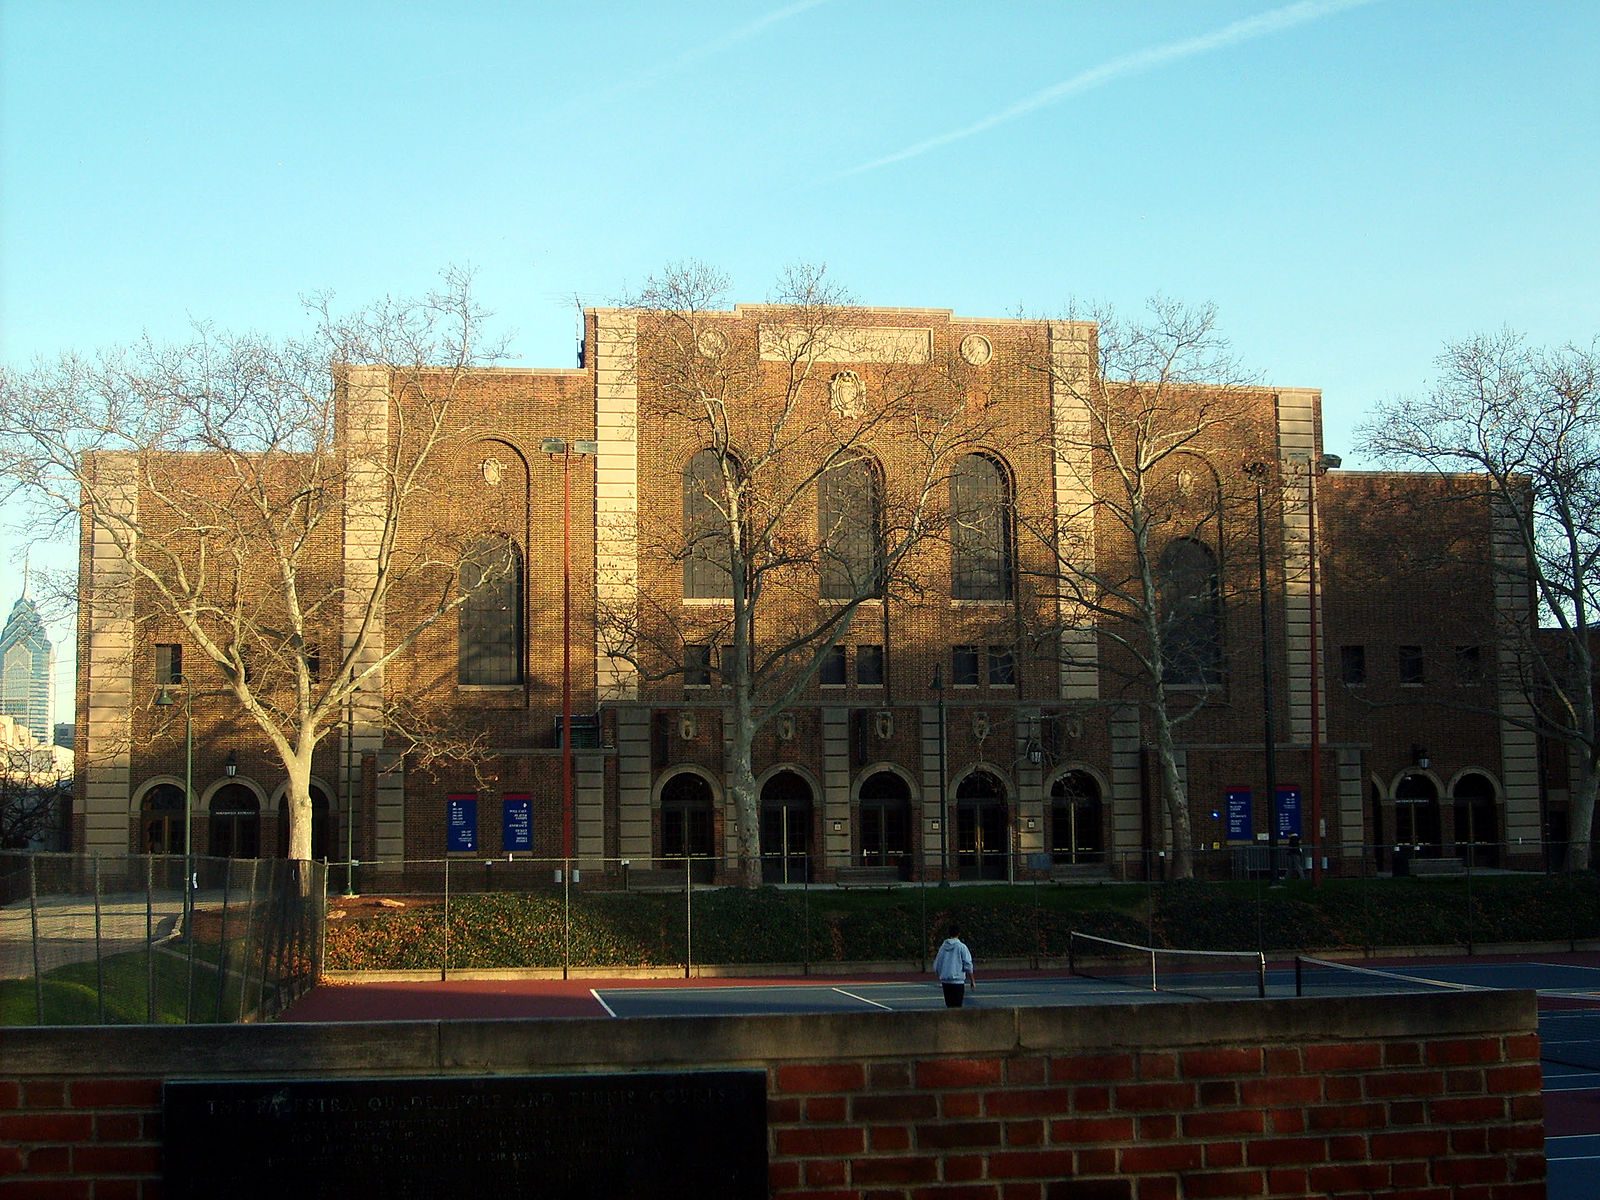 The sun sets over the Palestra